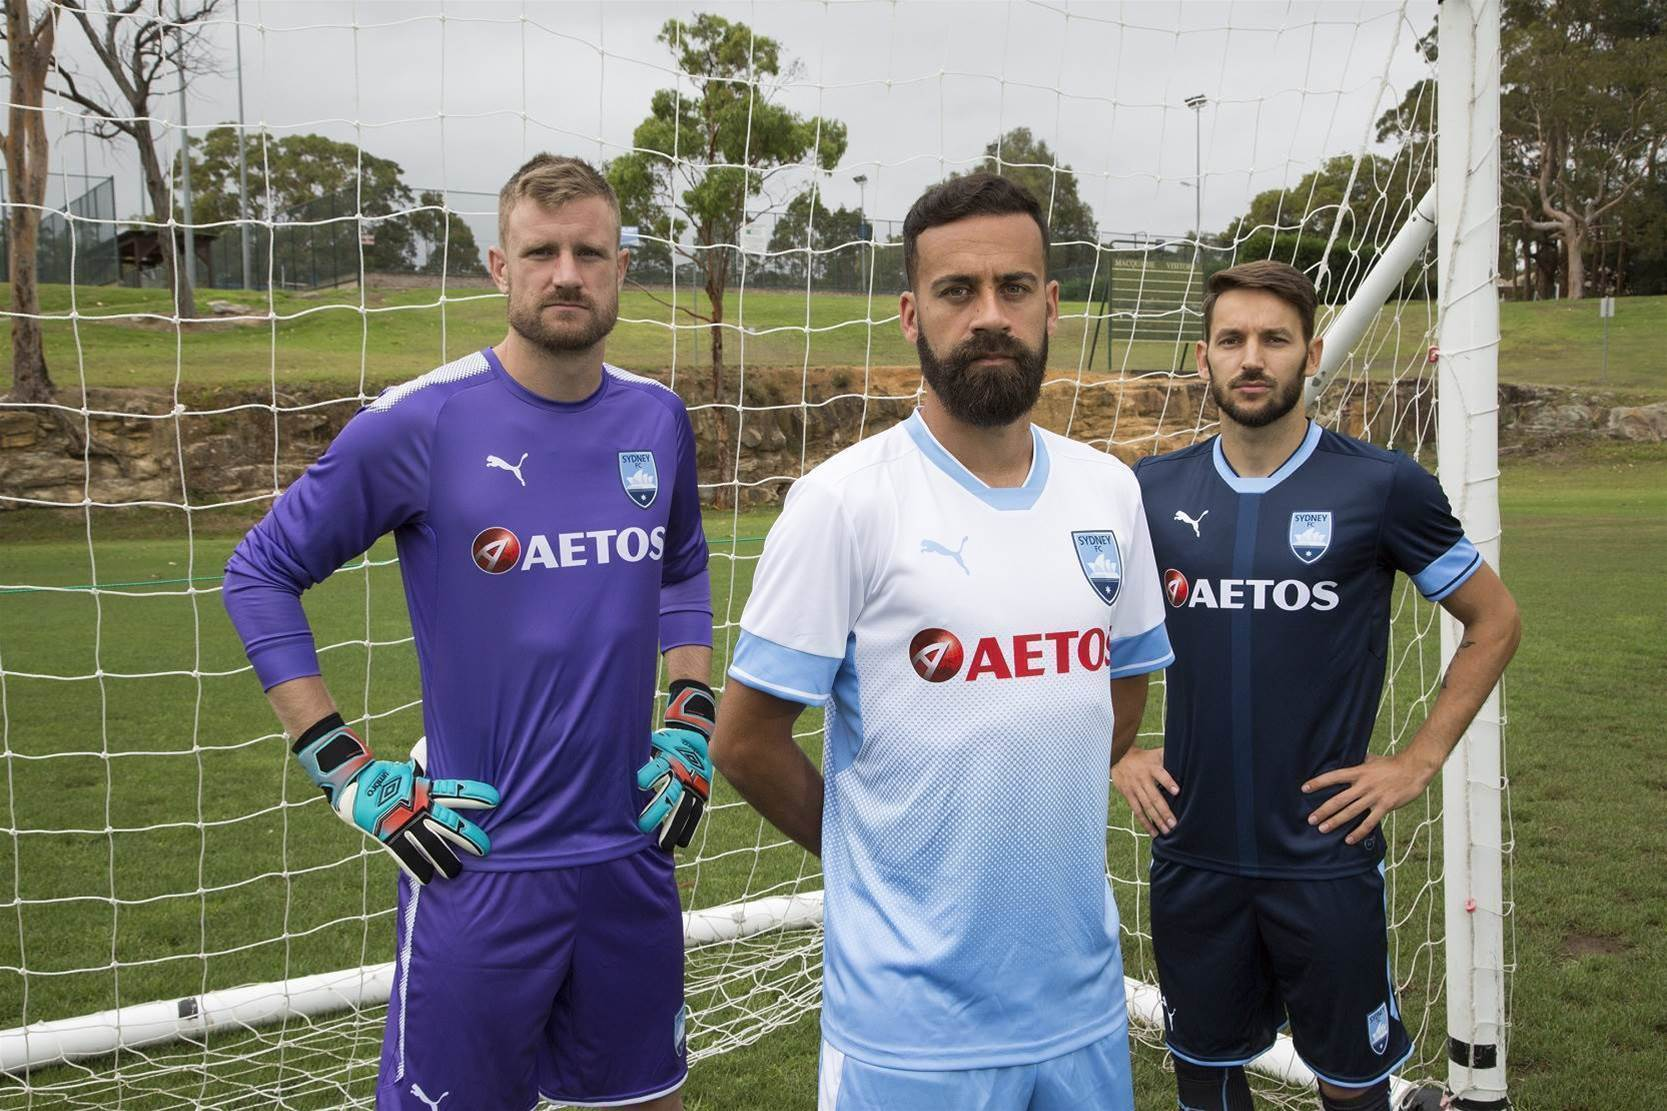 Gallery: Sydney FC unveils 2018 ACL kits